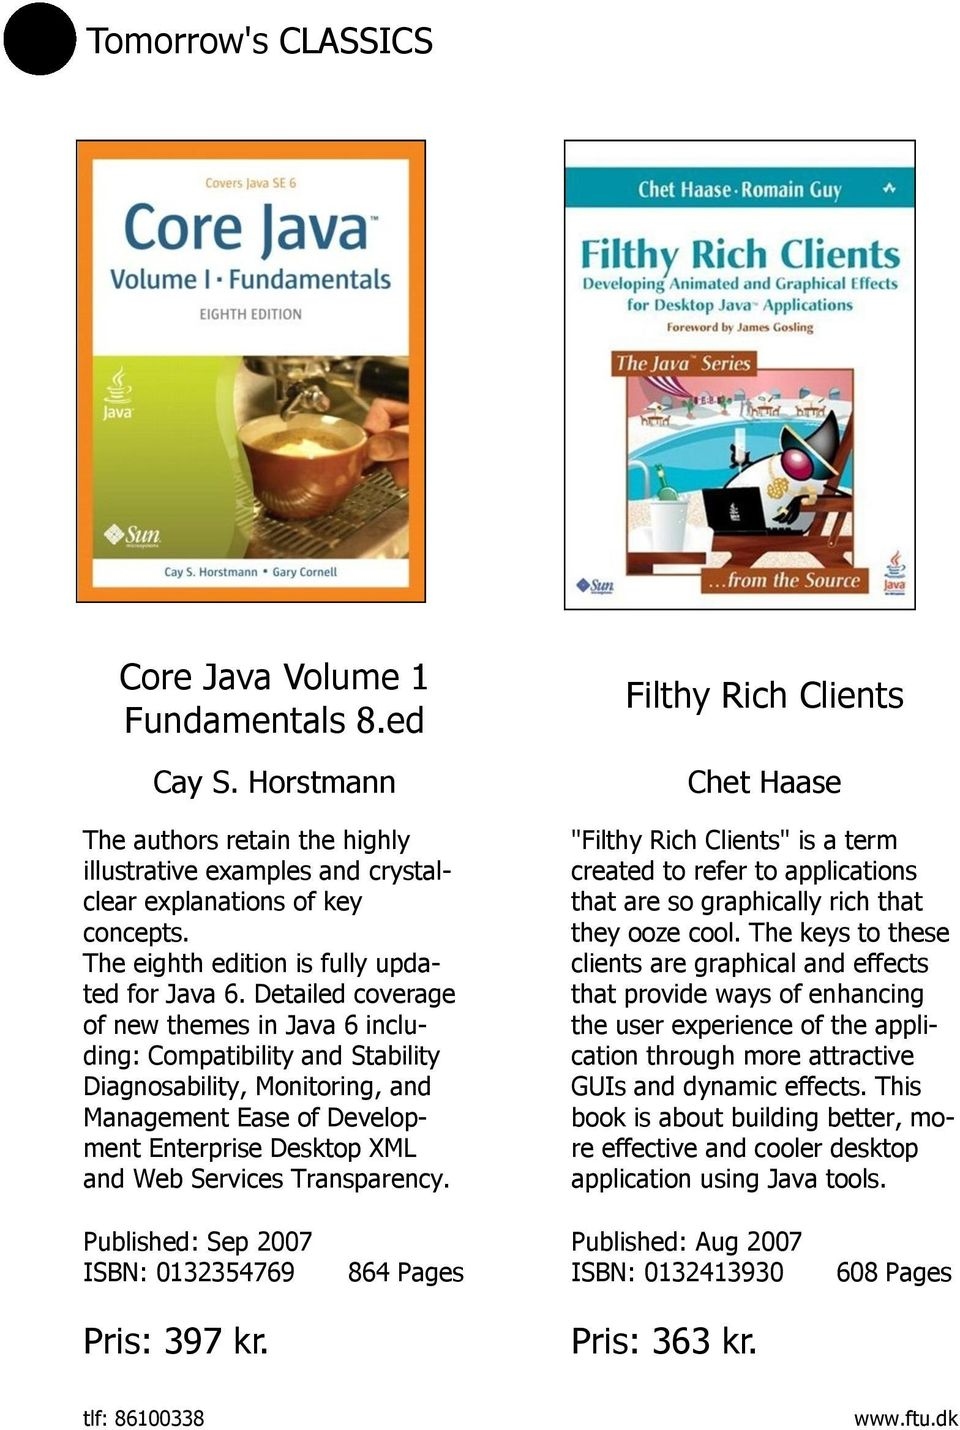 "Filthy Rich Clients Chet Haase ""Filthy Rich Clients"" is a term created to refer to applications that are so graphically rich that they ooze cool."